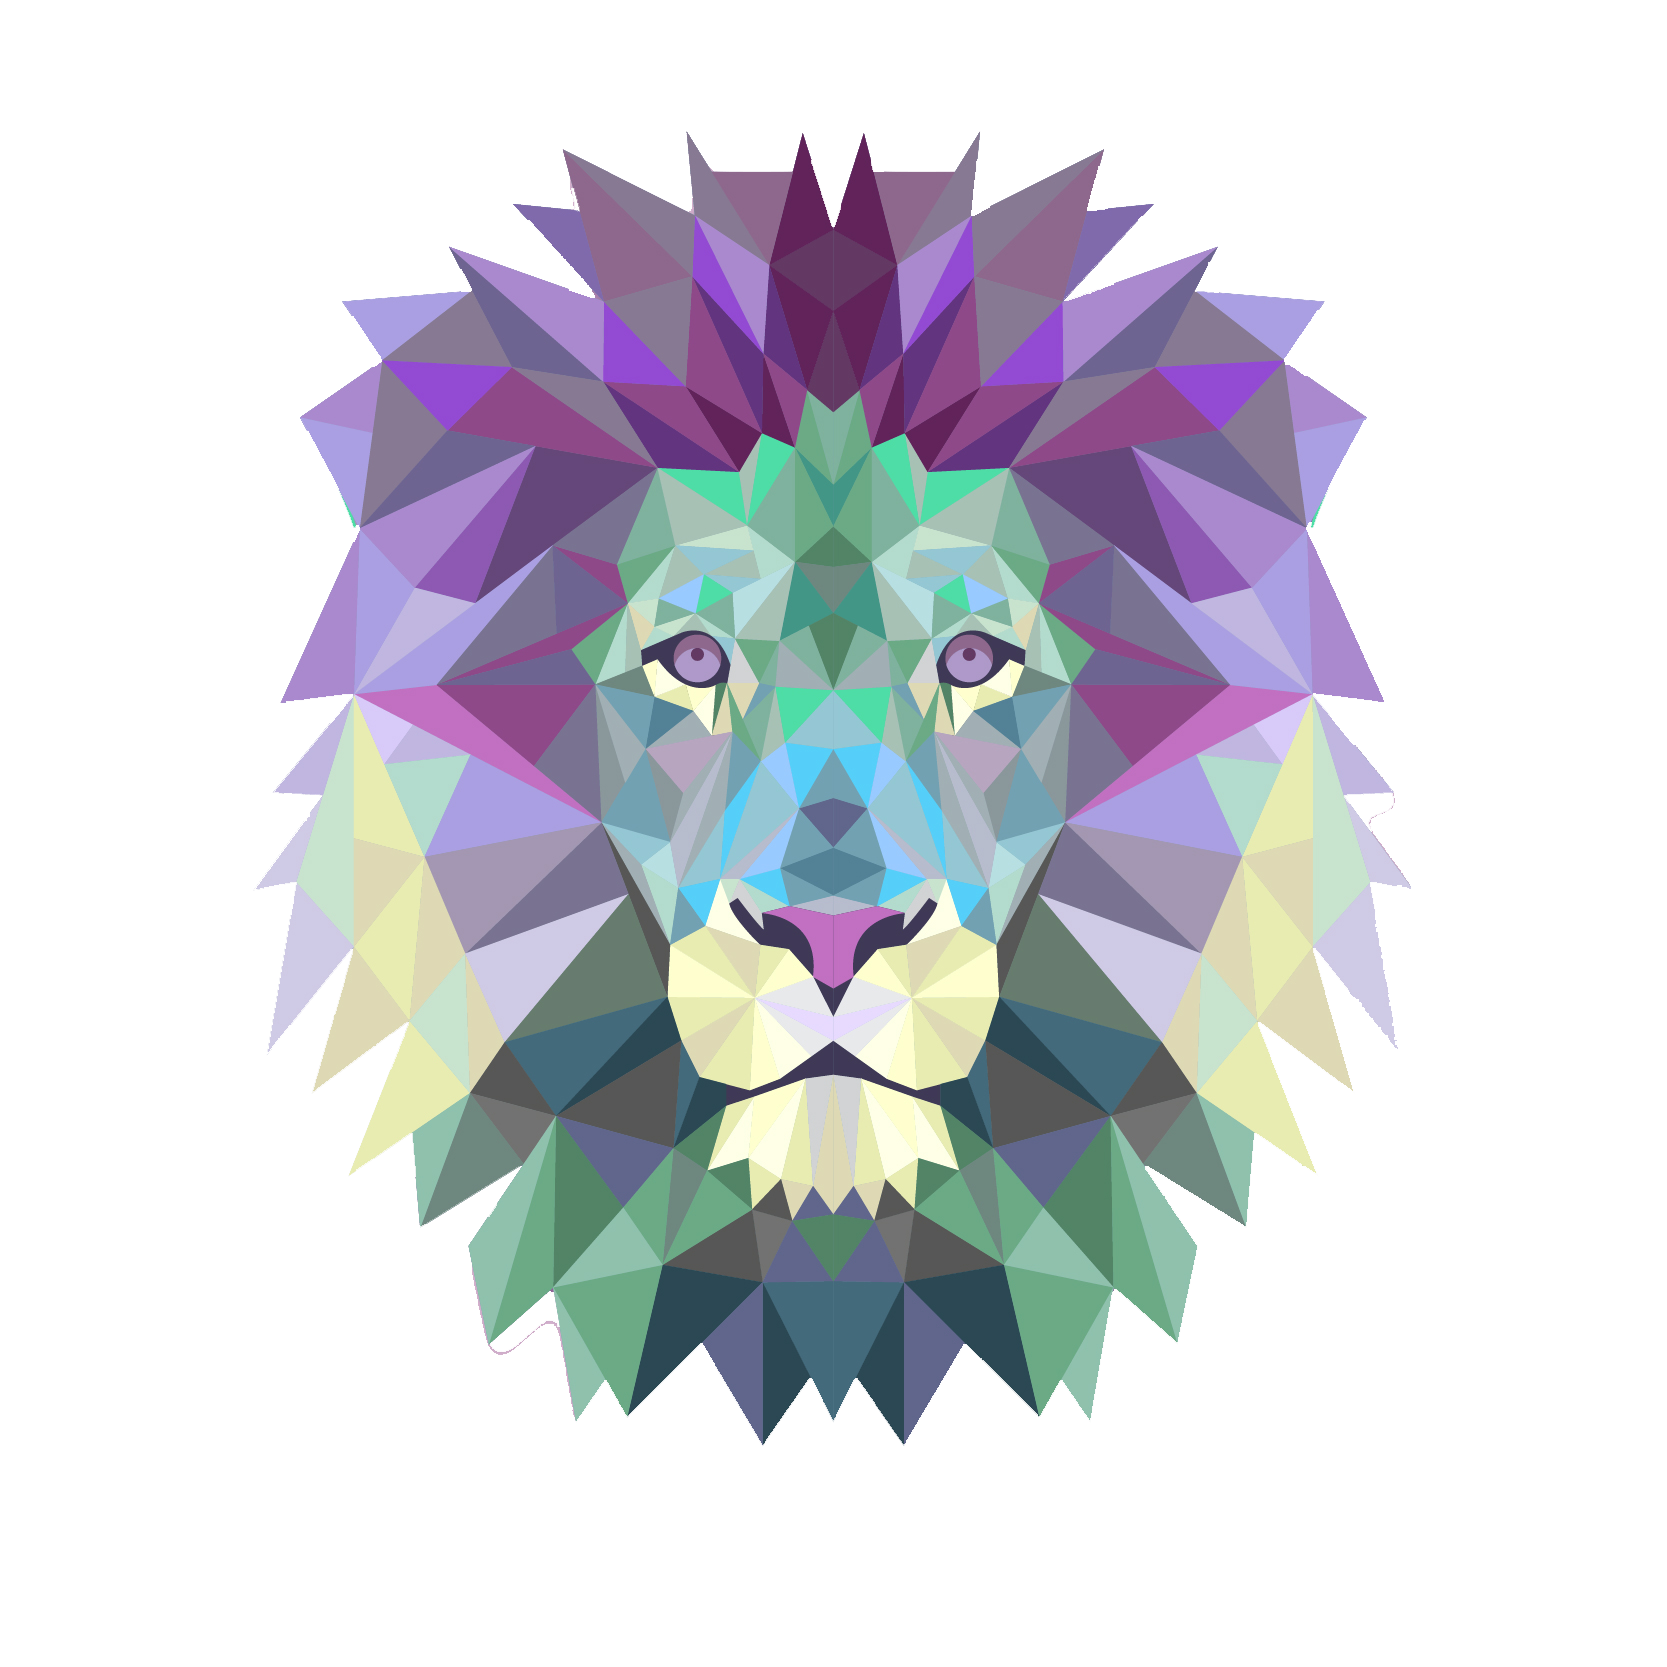 kisspng-lion-art-geometry-painting-watercolor-lion-5aeb9902eeed79.1861188015253895709787 image